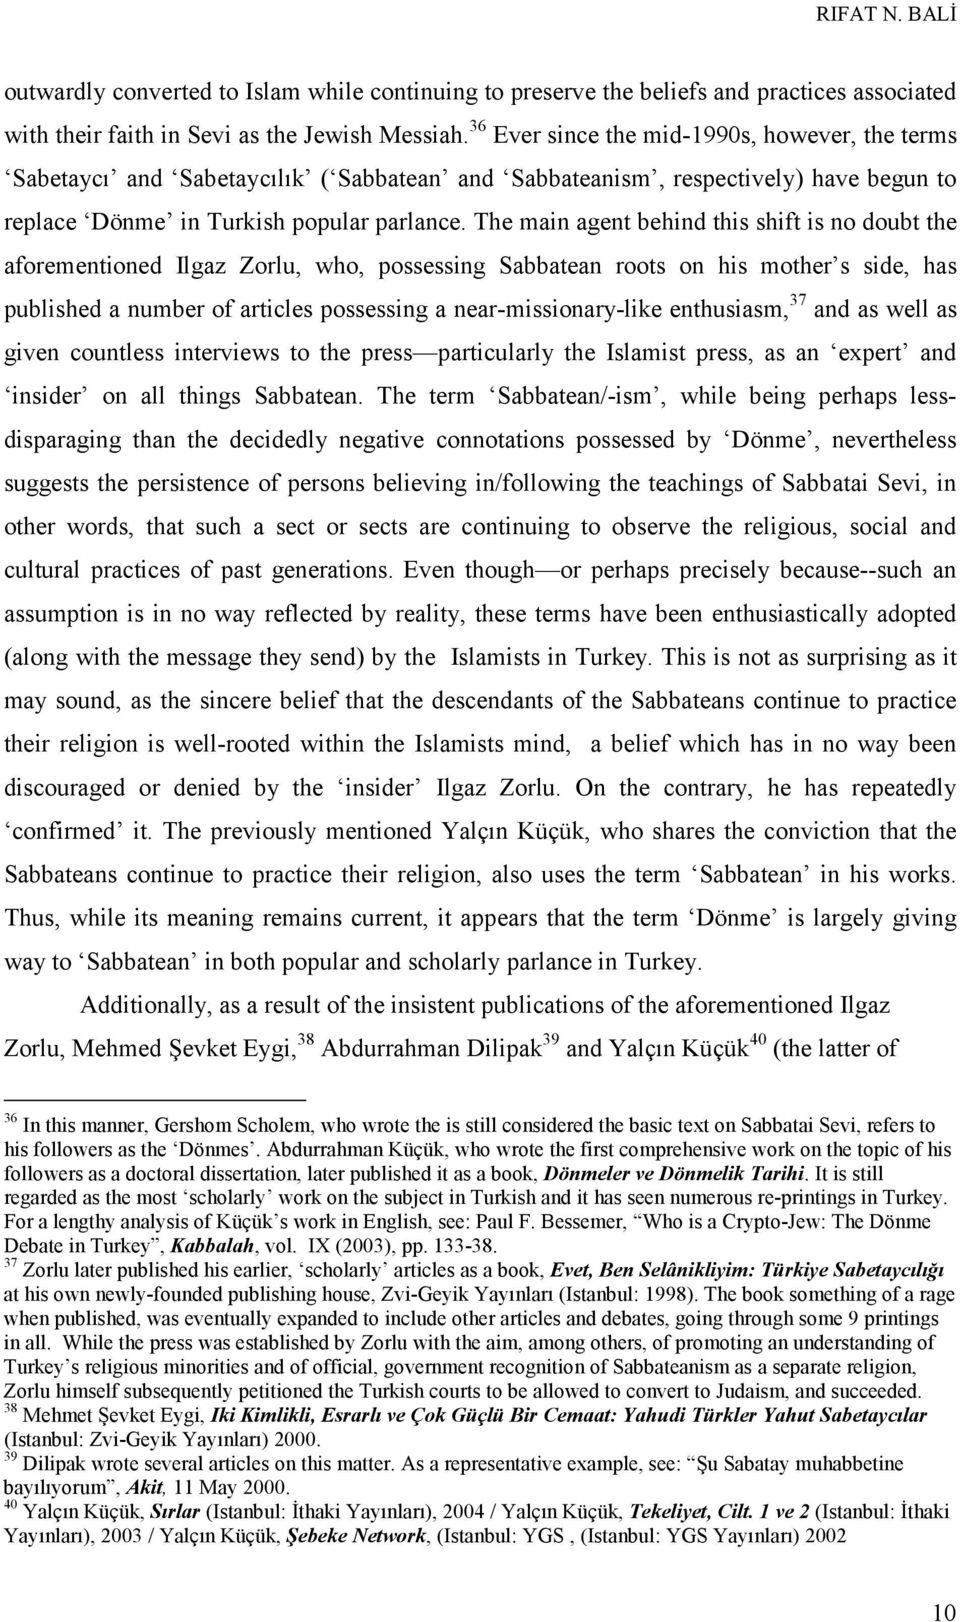 The main agent behind this shift is no doubt the aforementioned Ilgaz Zorlu, who, possessing Sabbatean roots on his mother s side, has published a number of articles possessing a near-missionary-like